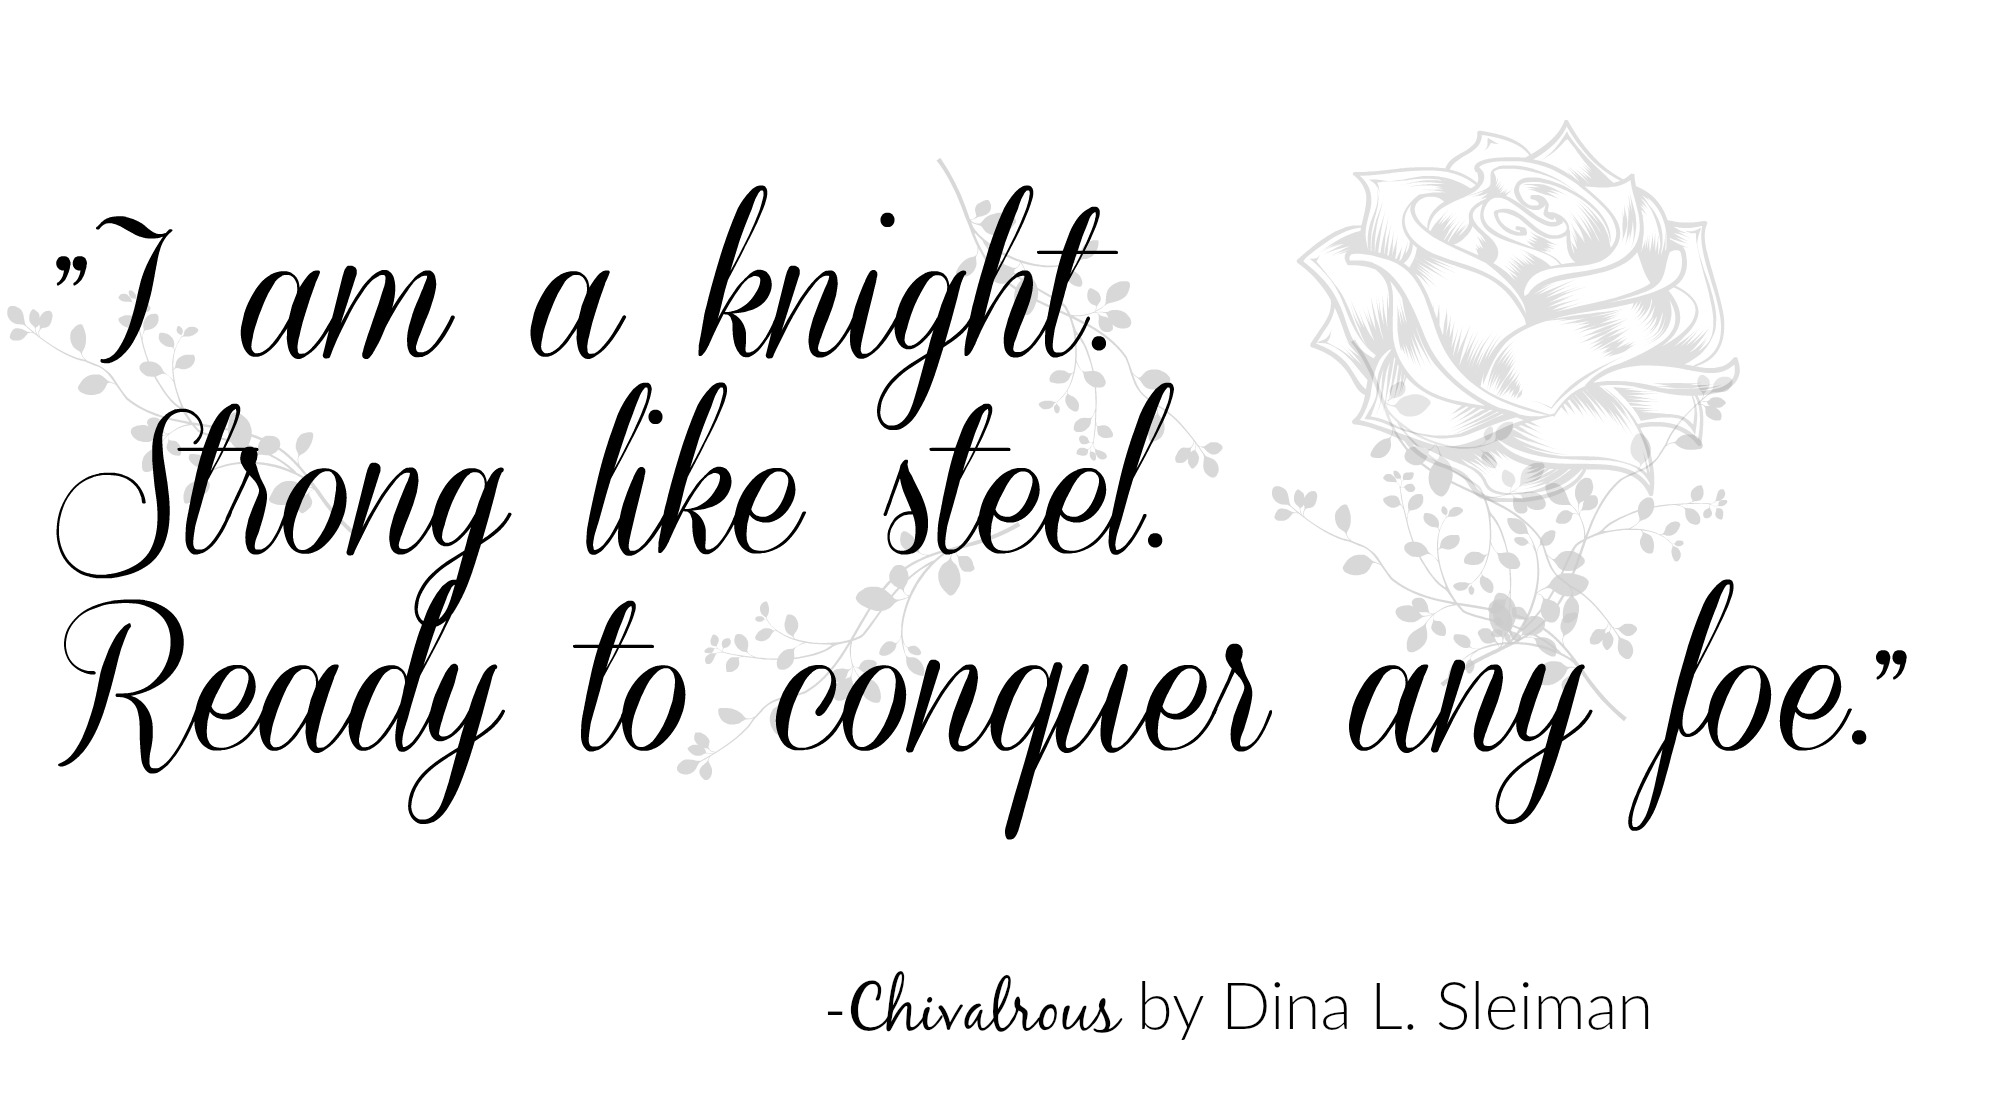 Chivalrous by Dina L. Sleiman Quotable